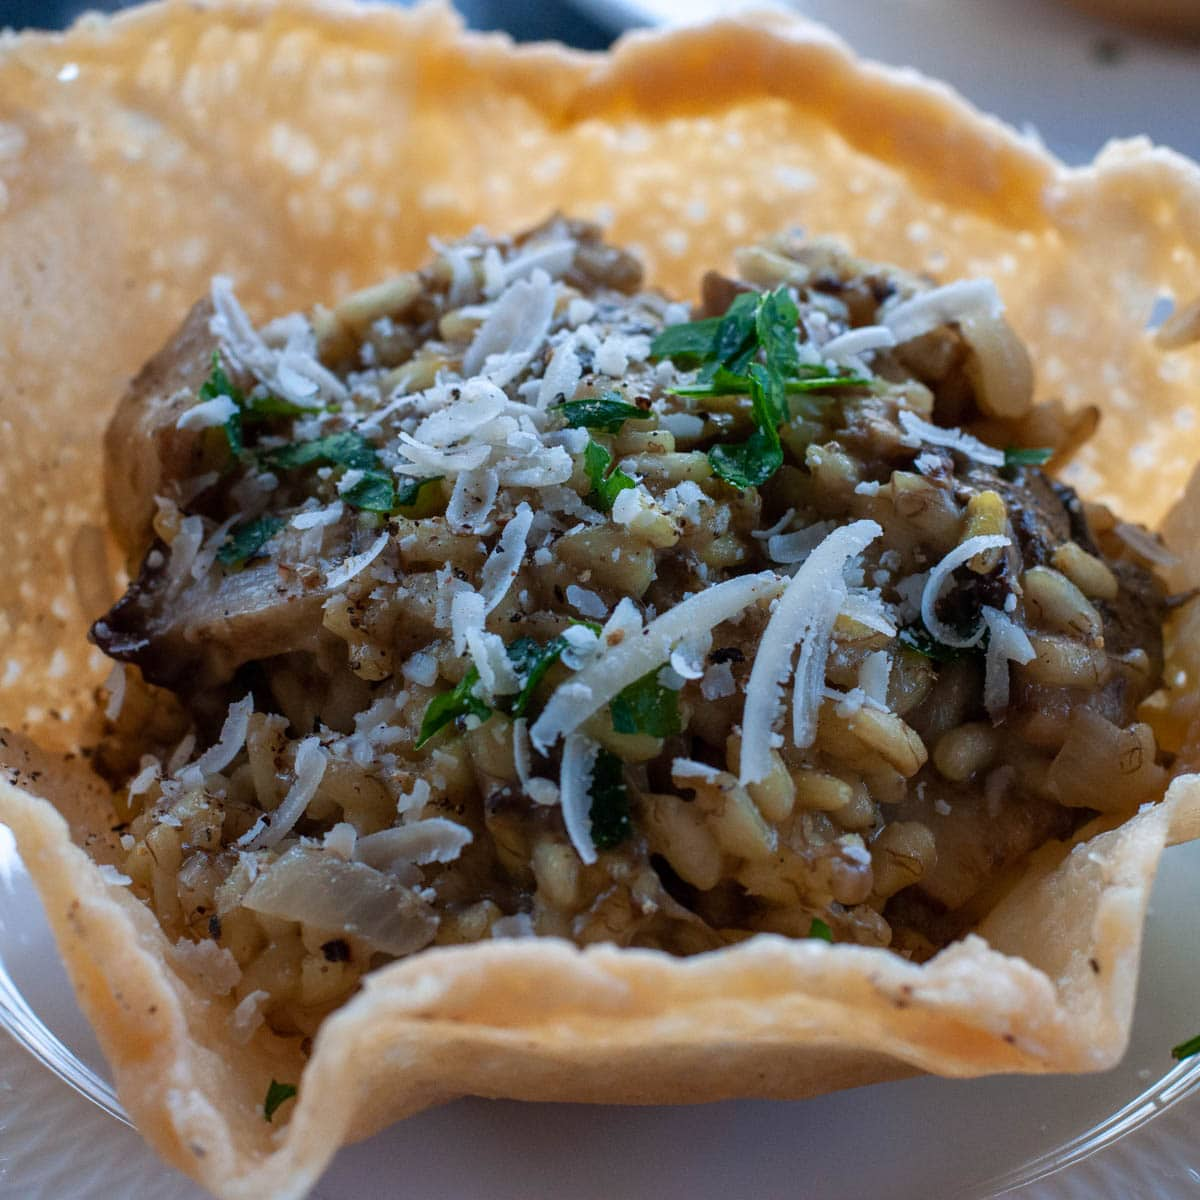 Porcini mushroom risotto served in a Parmesan bowl